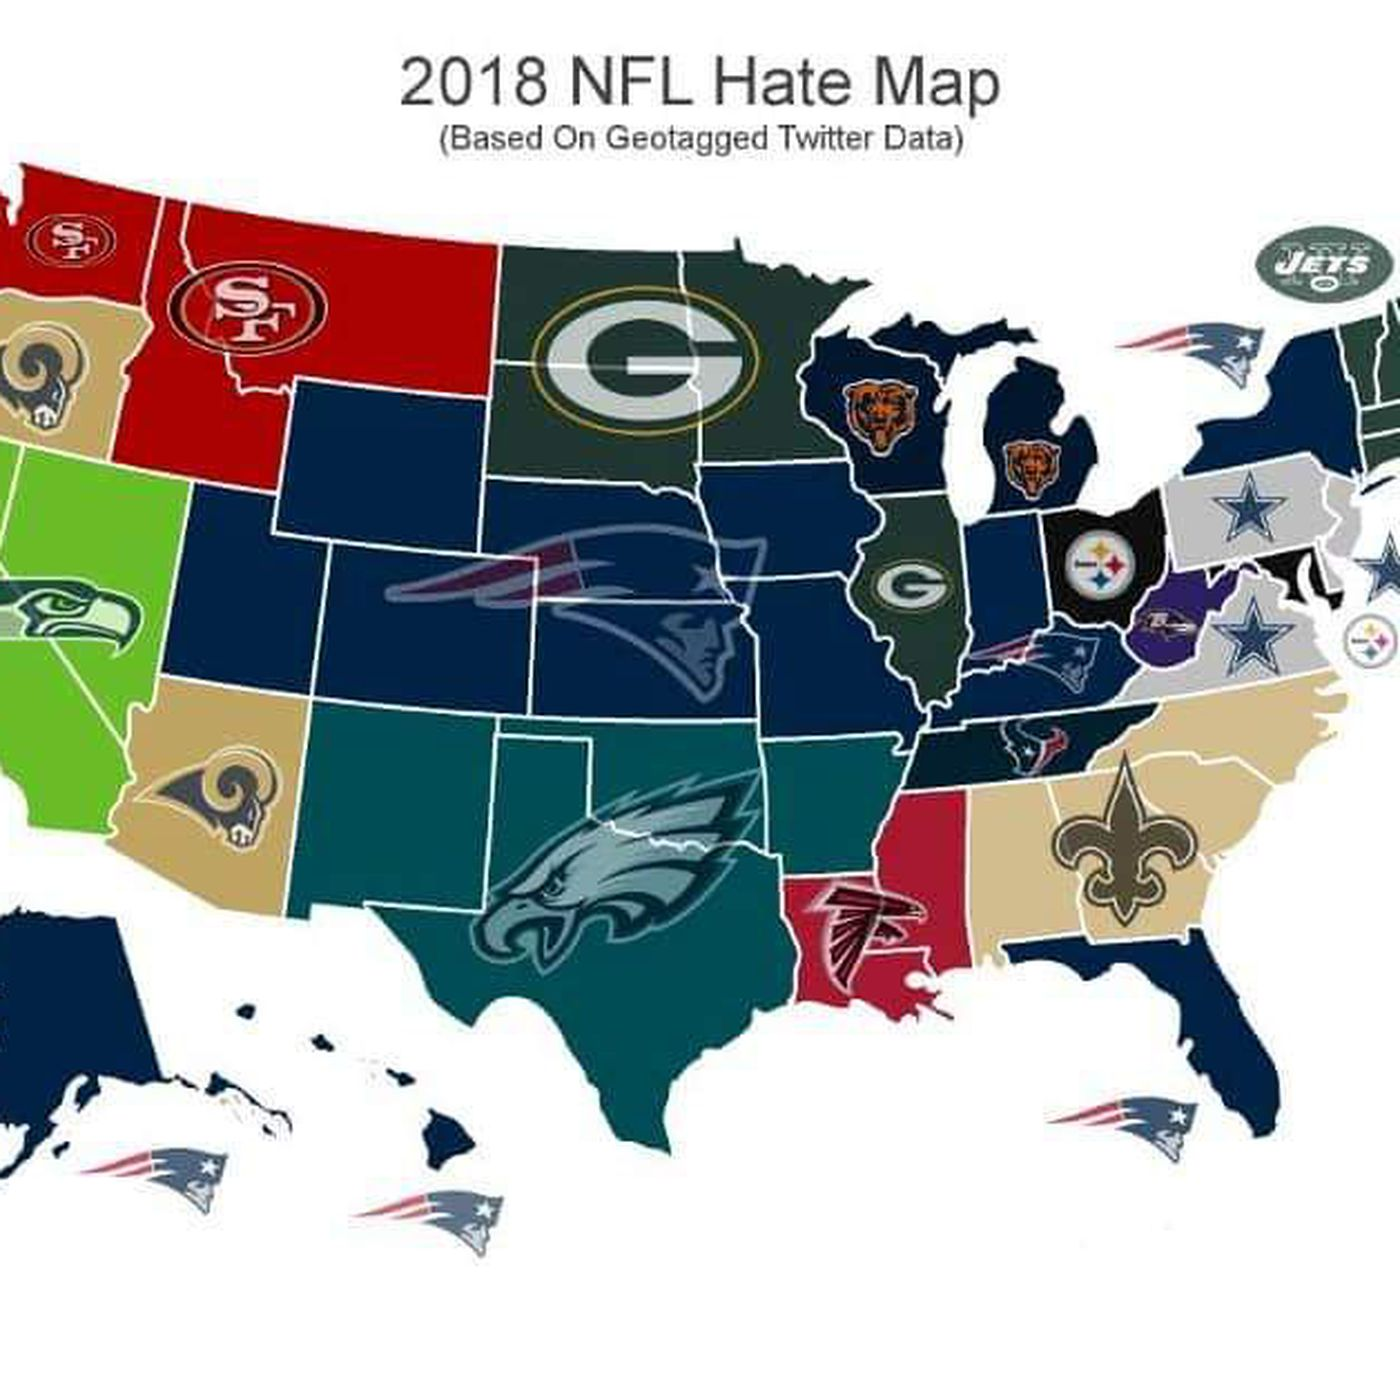 This map shows the Patriots were America's most-d team ... Map Of All Nfl Teams on map of nfl teams in usa, map of all disney, map of favorite nfl teams, map of all mls teams, us map nfl teams, central hockey league teams, us map of baseball teams, map nfl teams by fans, map of all cfl teams, map of nfl stadiums, map of all colleges, map of all mlb, map of all saints, map of all football players, map with nfl team division, map of the nfl, map of all animals, map of nfl teams poster, map of all new england, map of nfl cities,